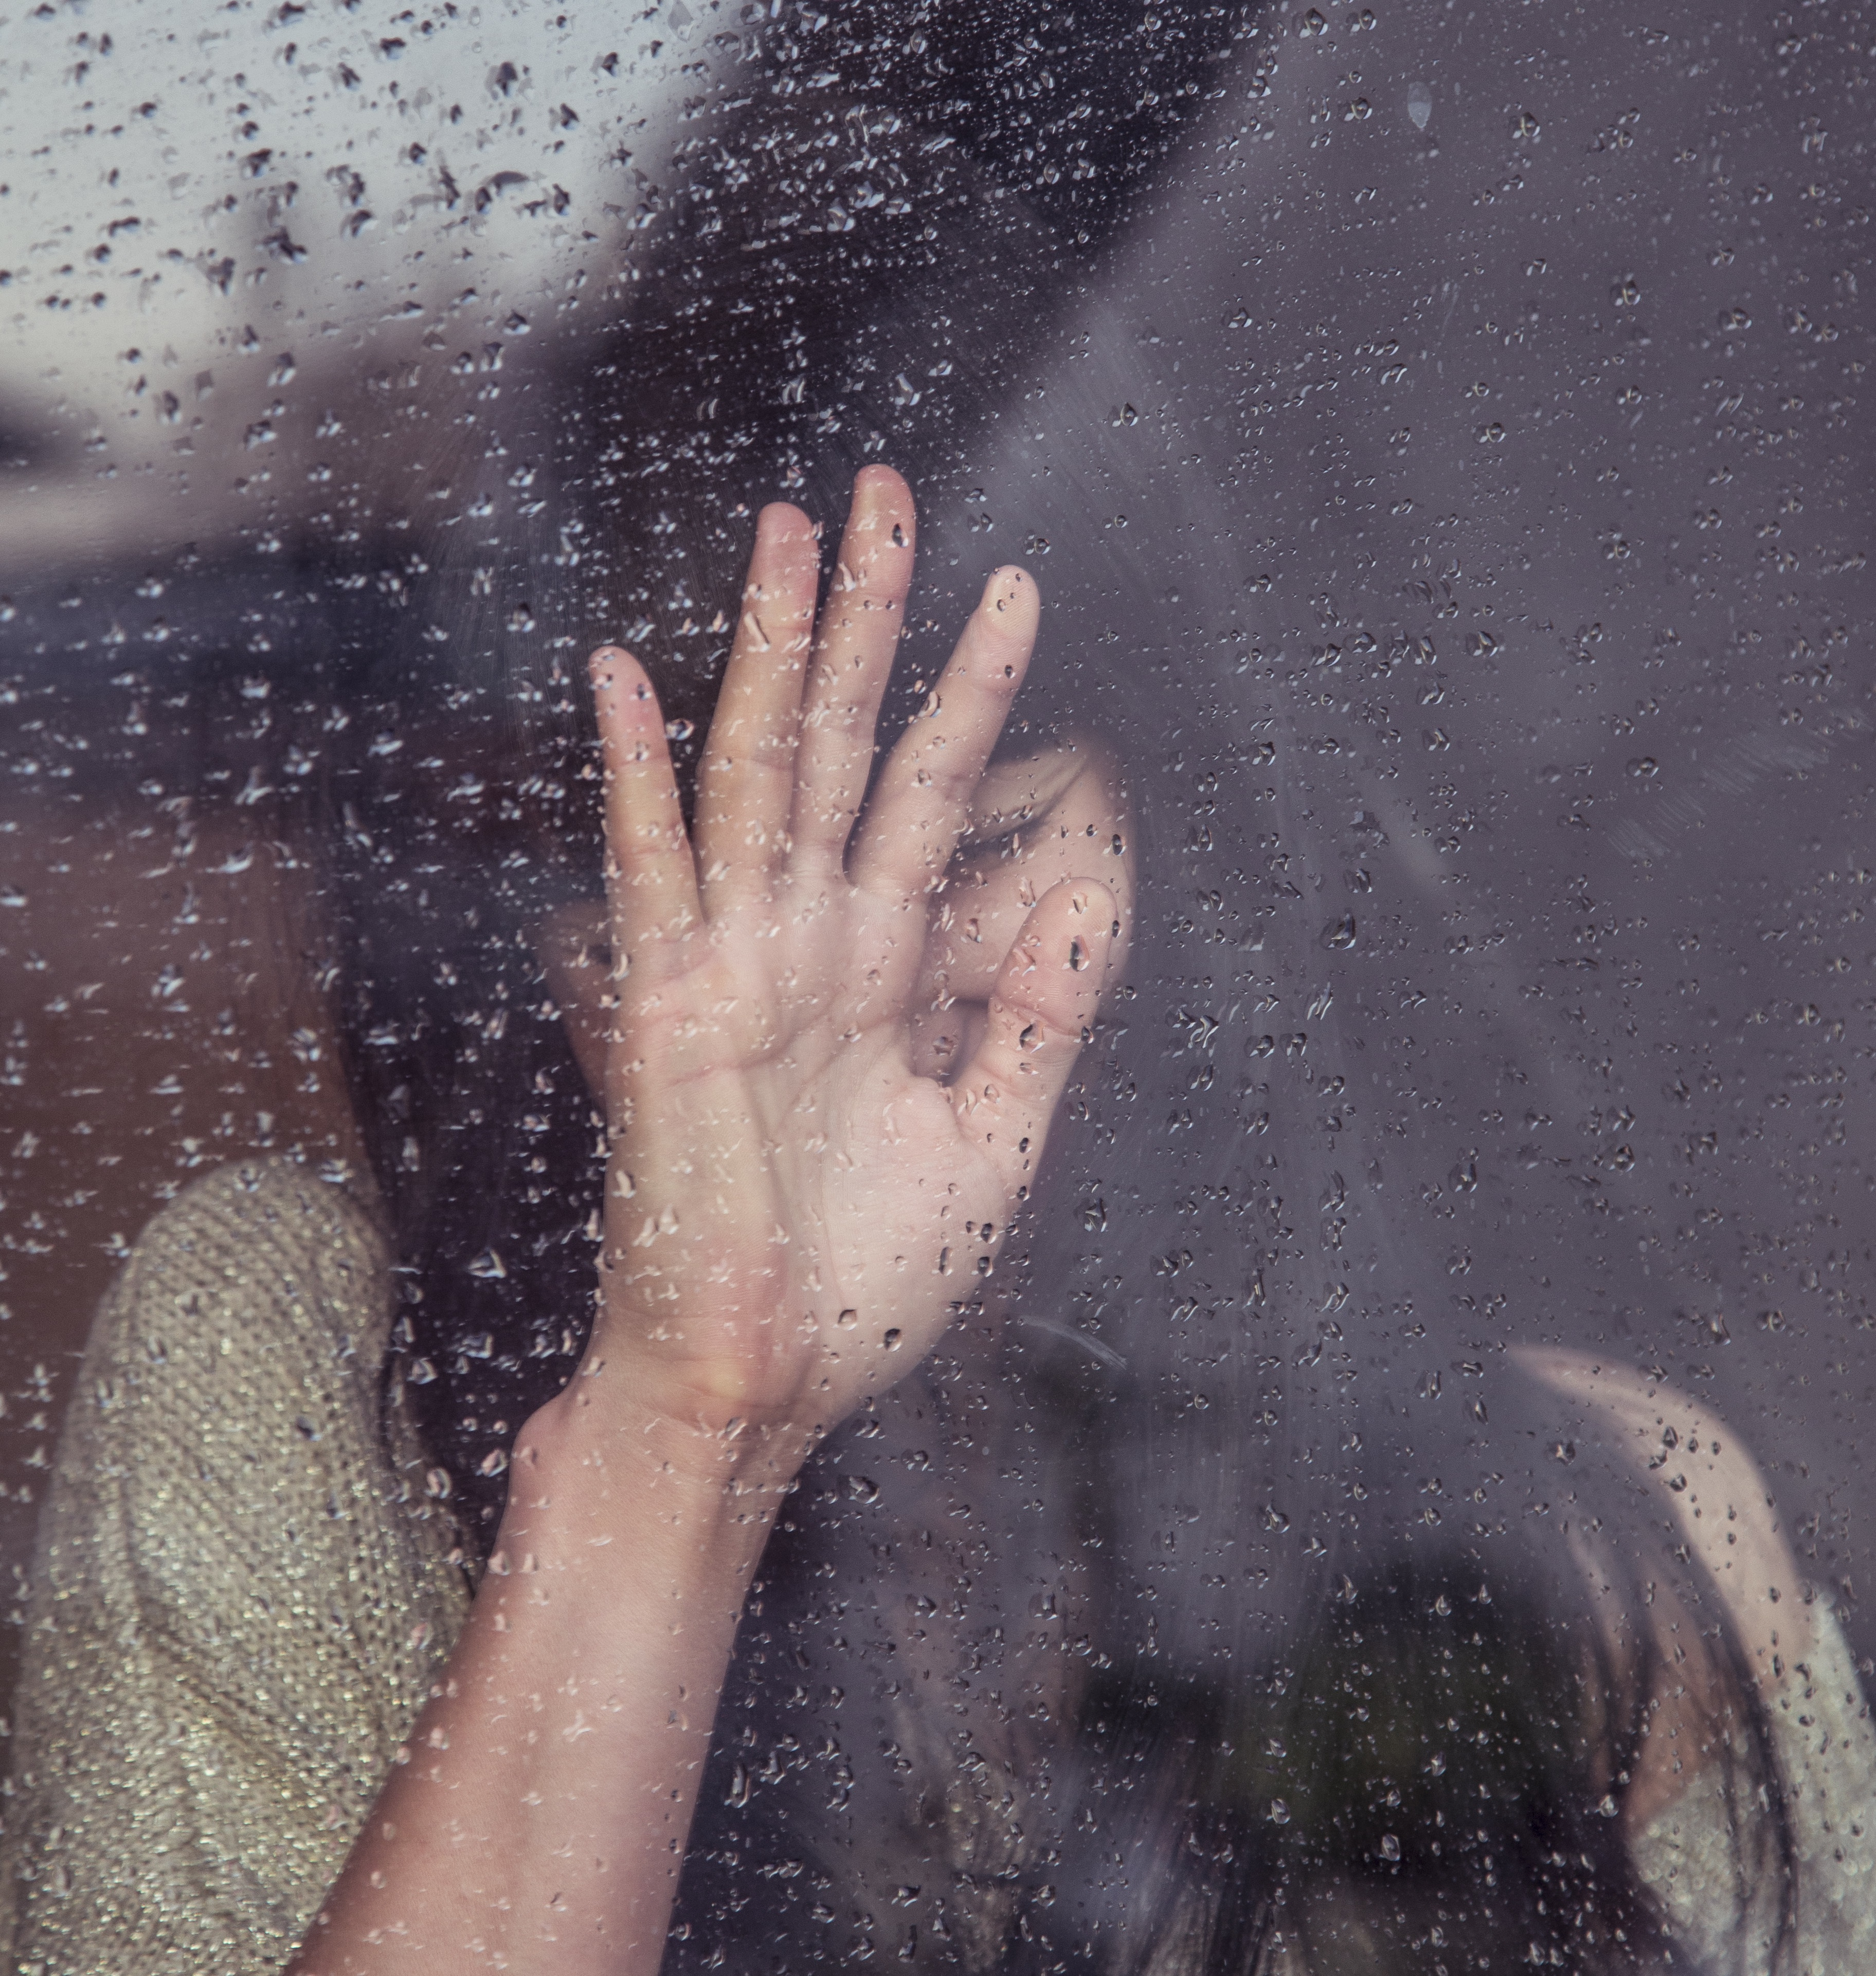 Woman, tears on the window